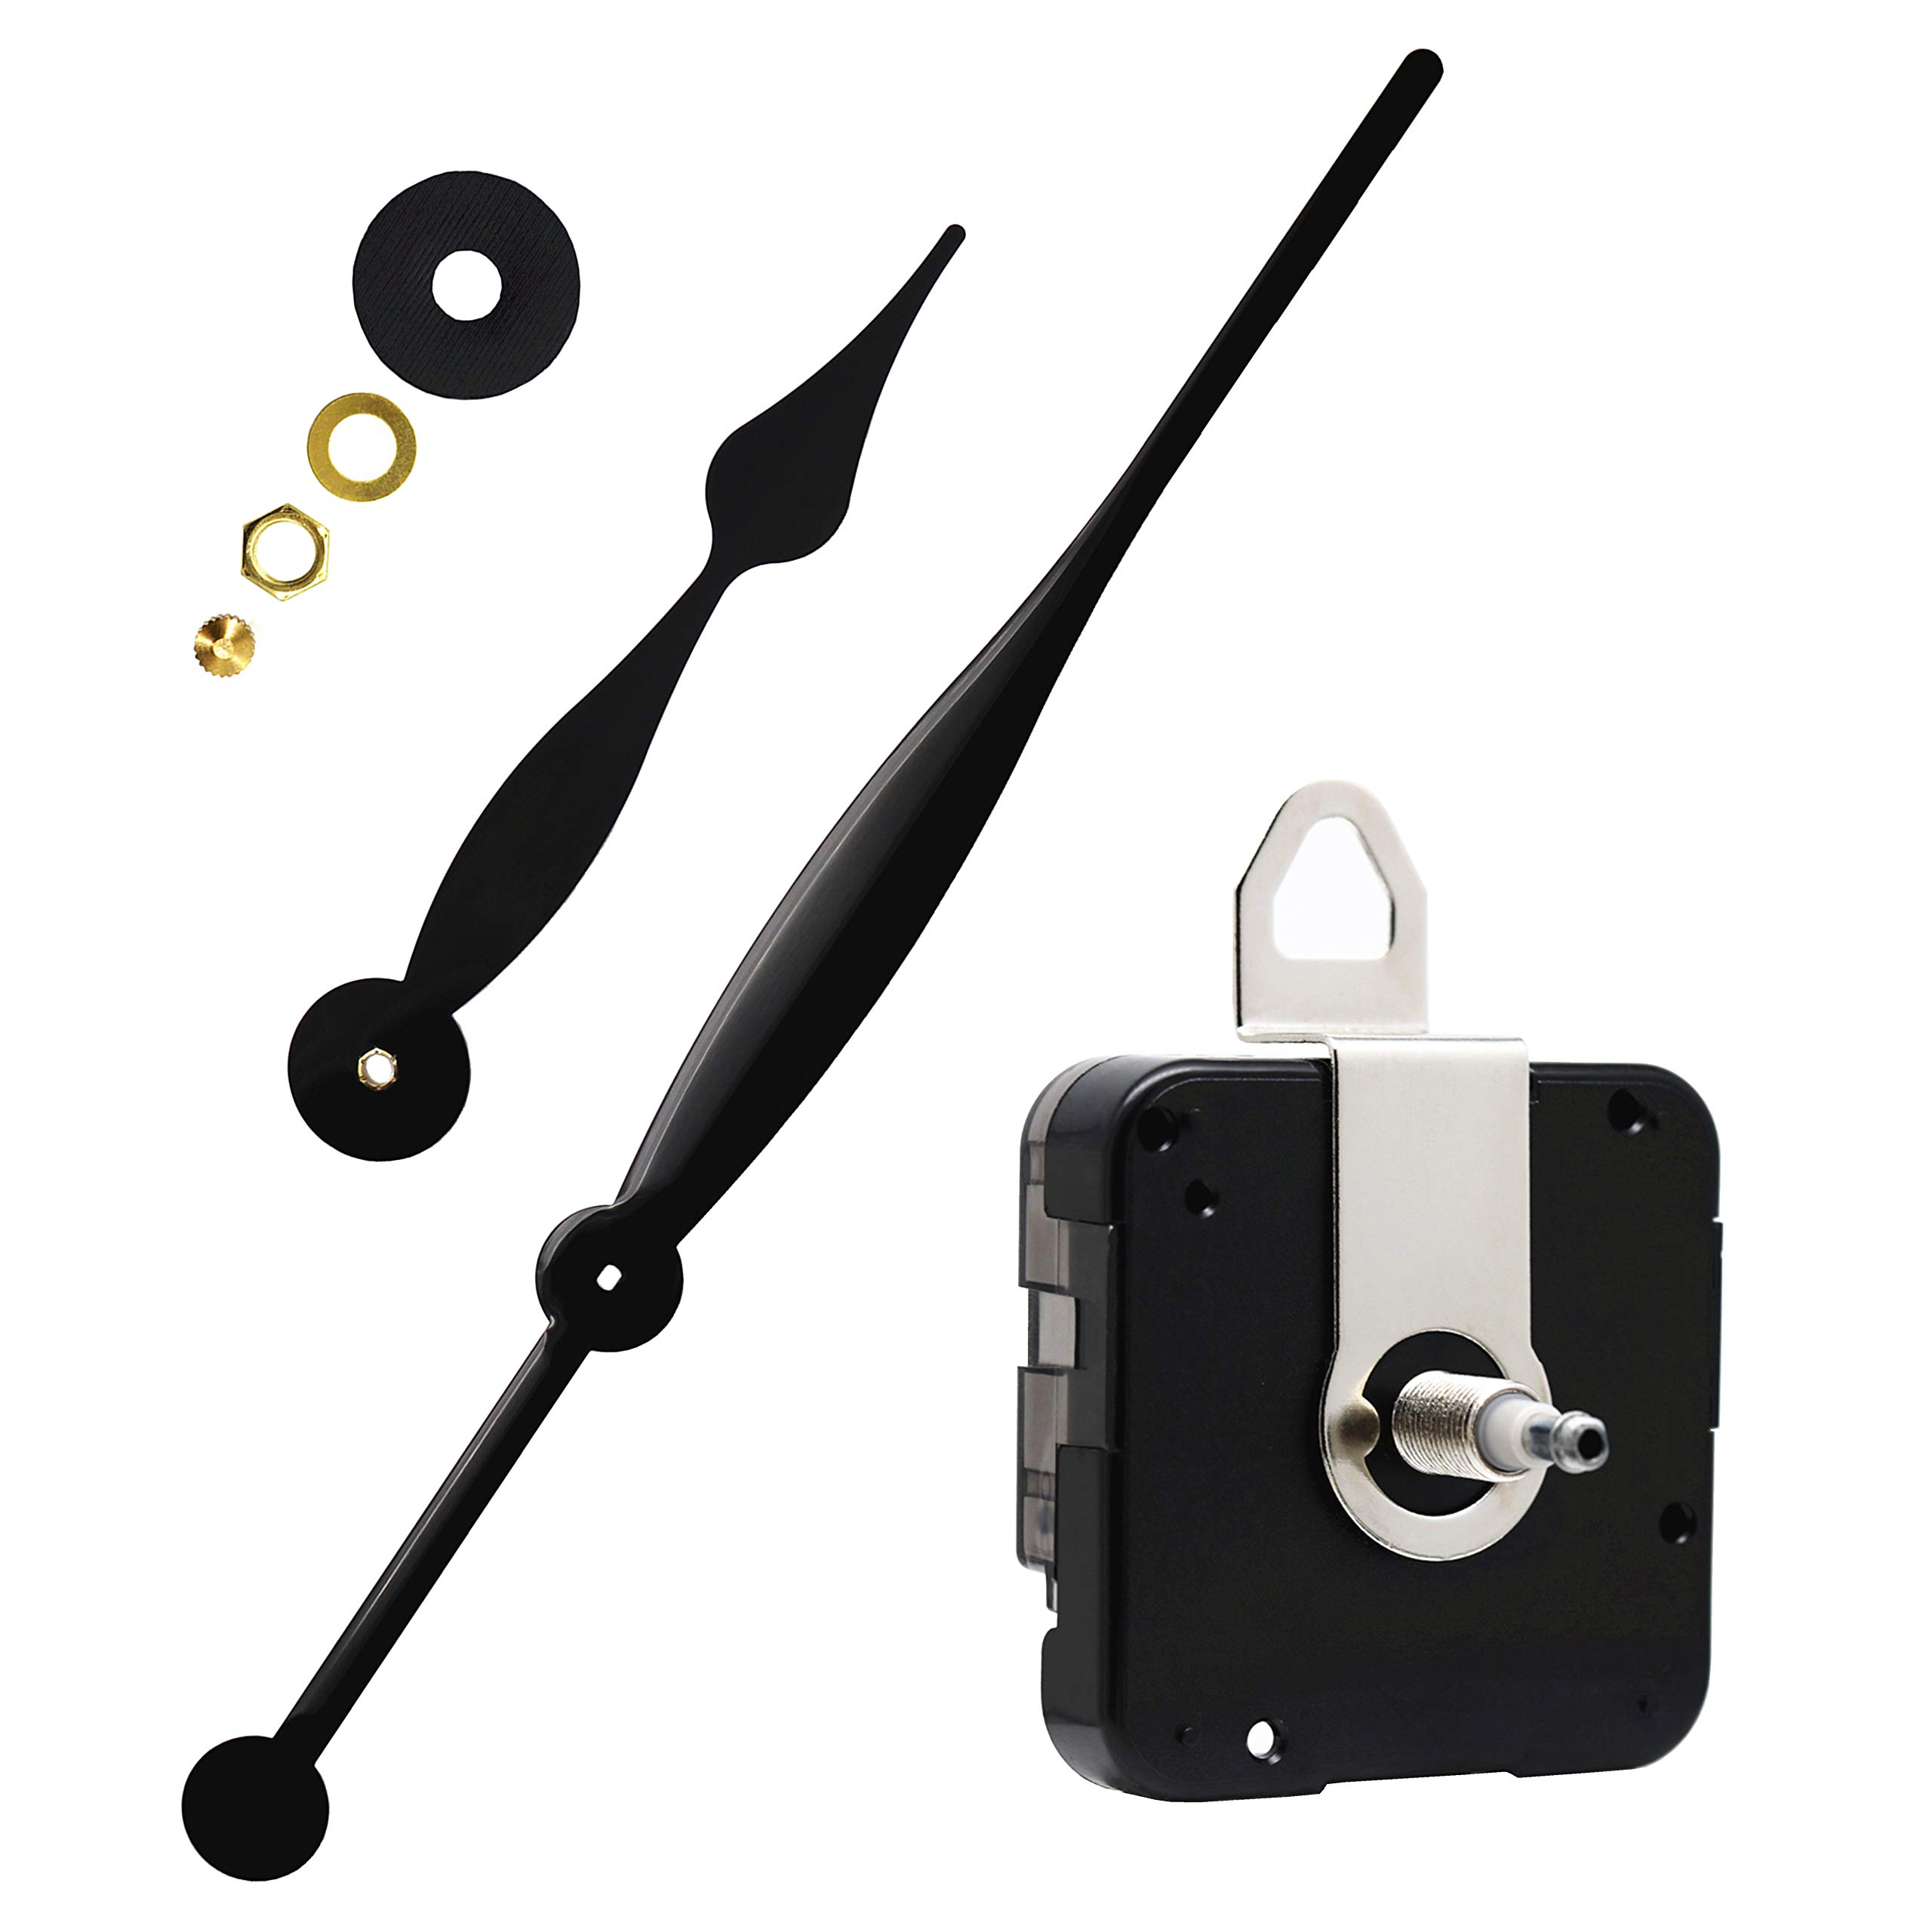 Youngtown 12888 High Torque Quartz Clock Movement Replacement Parts with 350 mm/ 13.78 Inches Long Spade Hands